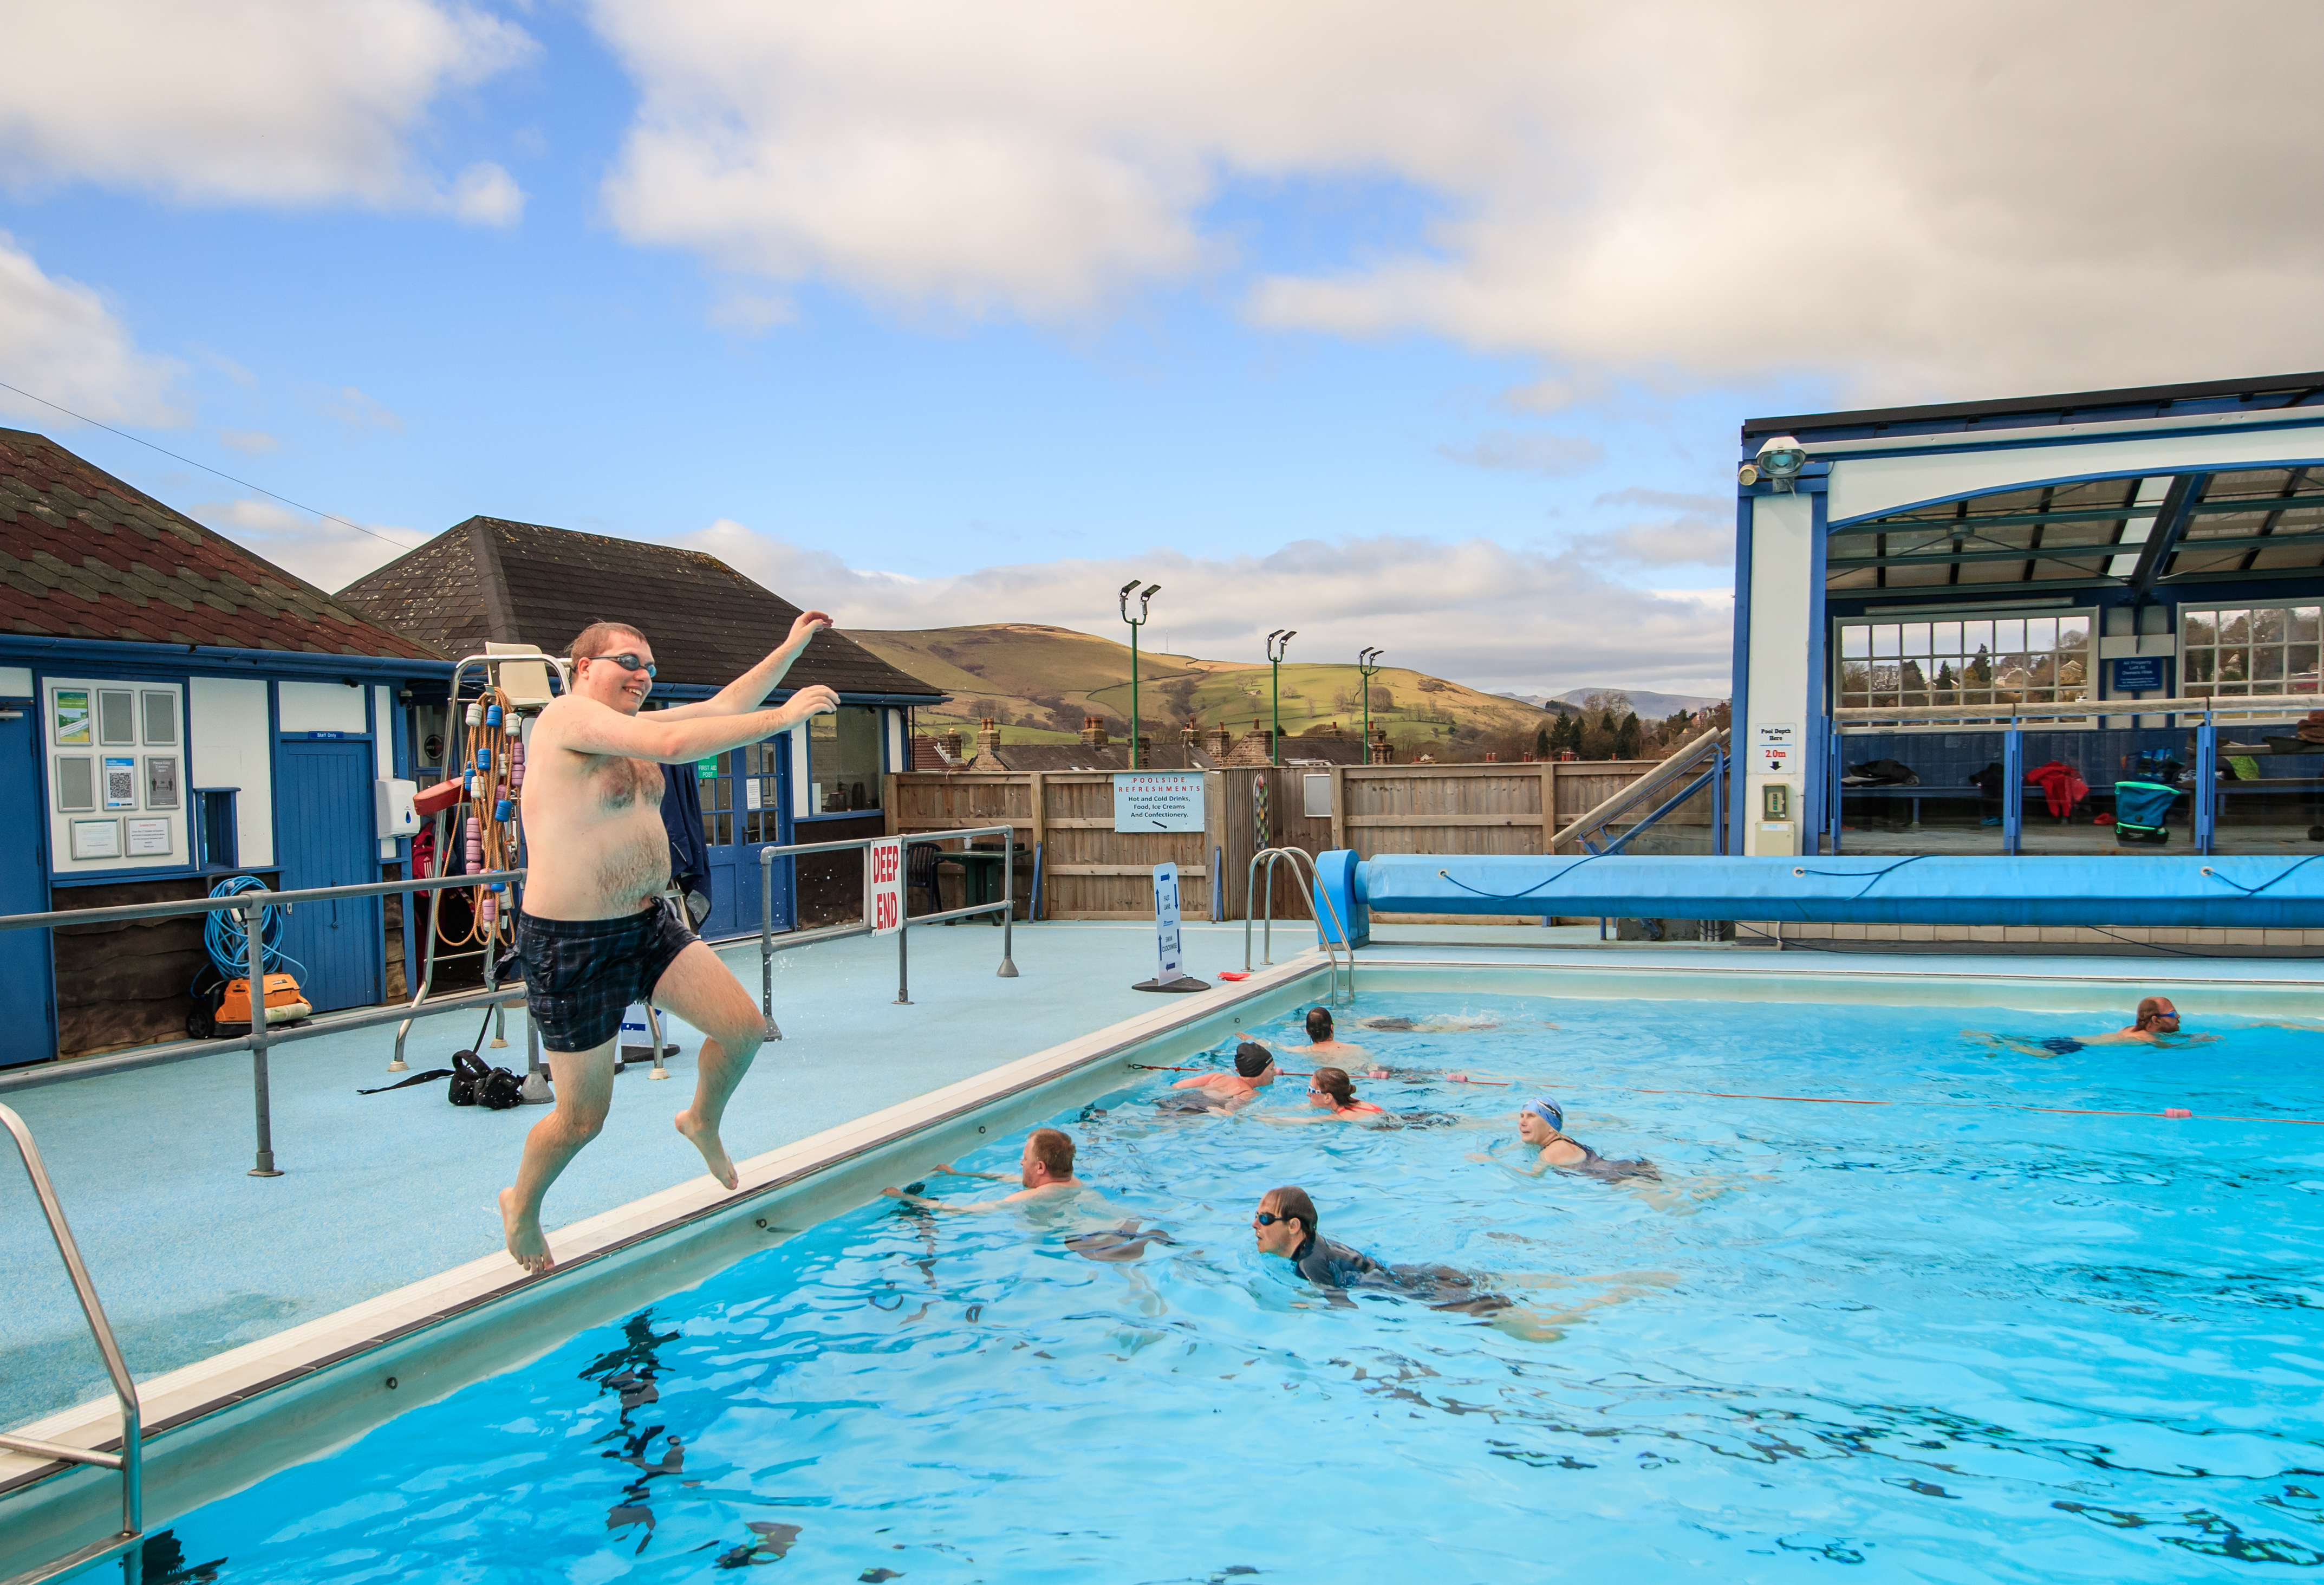 <p>A man jumps in the pool at Hathersage outdoor swimming pool near Hope Valley, following the easing of England's lockdown to allow far greater freedom outdoors. Picture date: Monday March 29, 2021.</p>